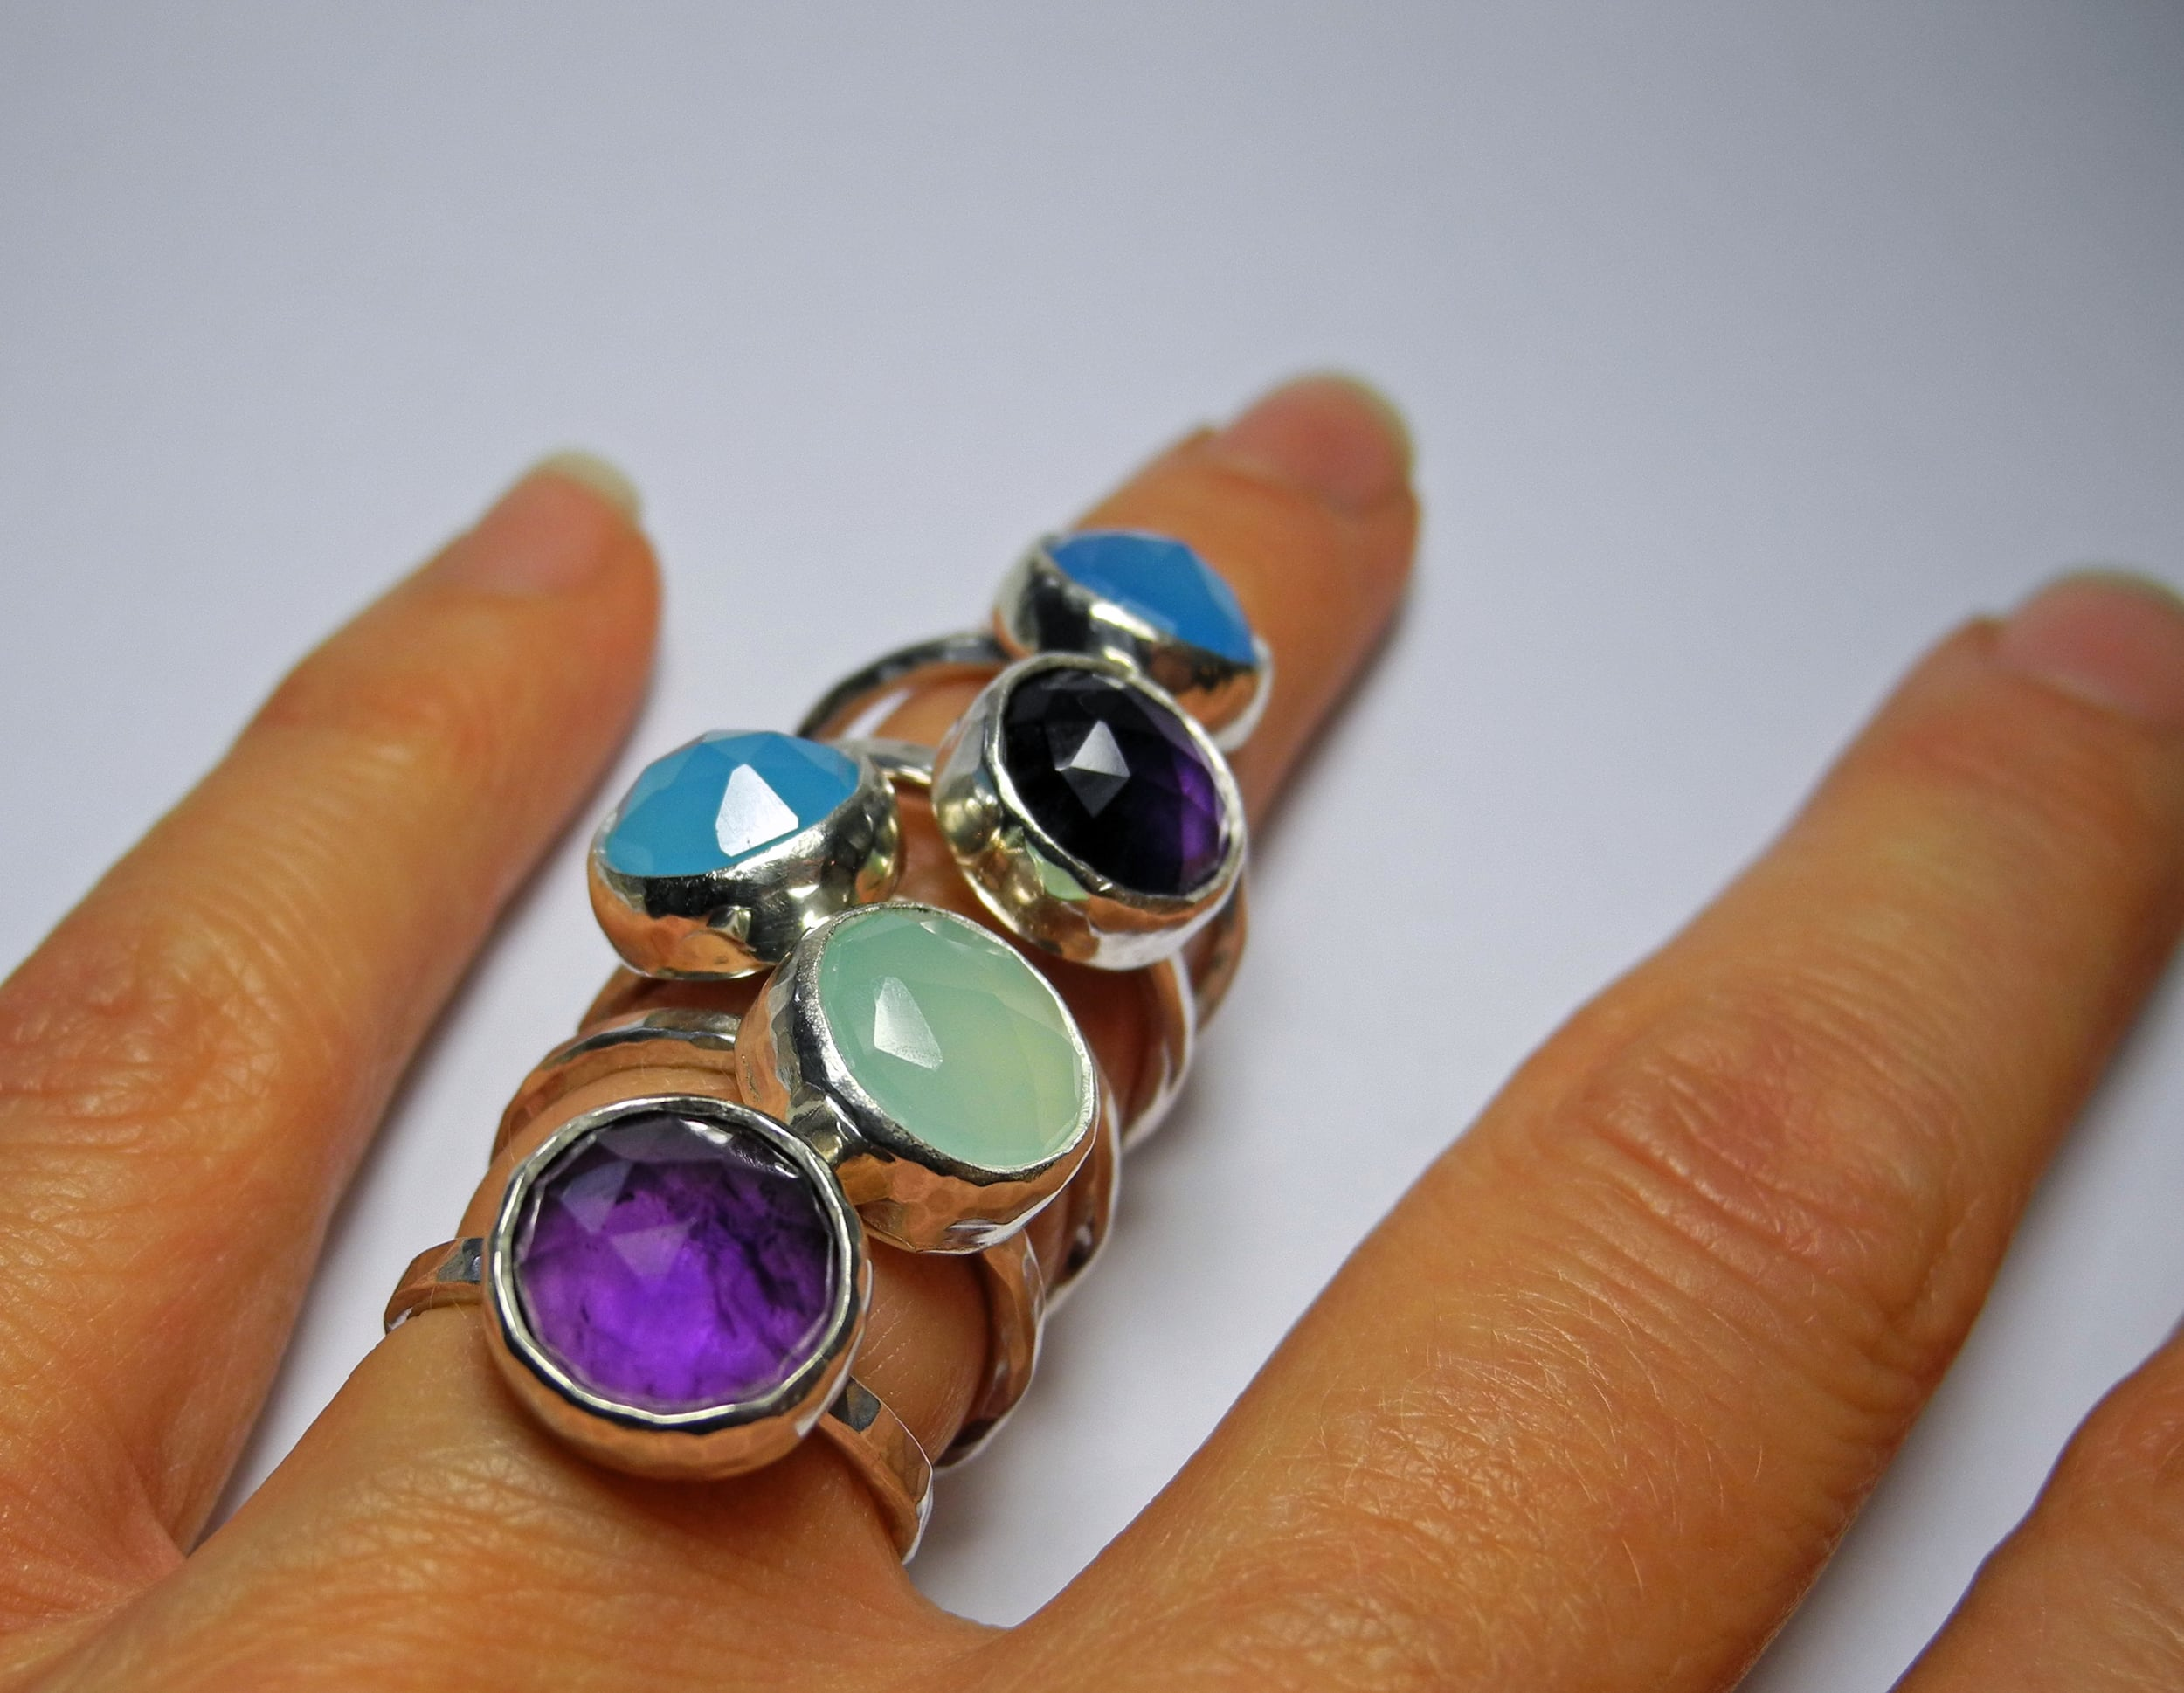 Sweetie rings with amethyst, aquamarine and blue chalcedony